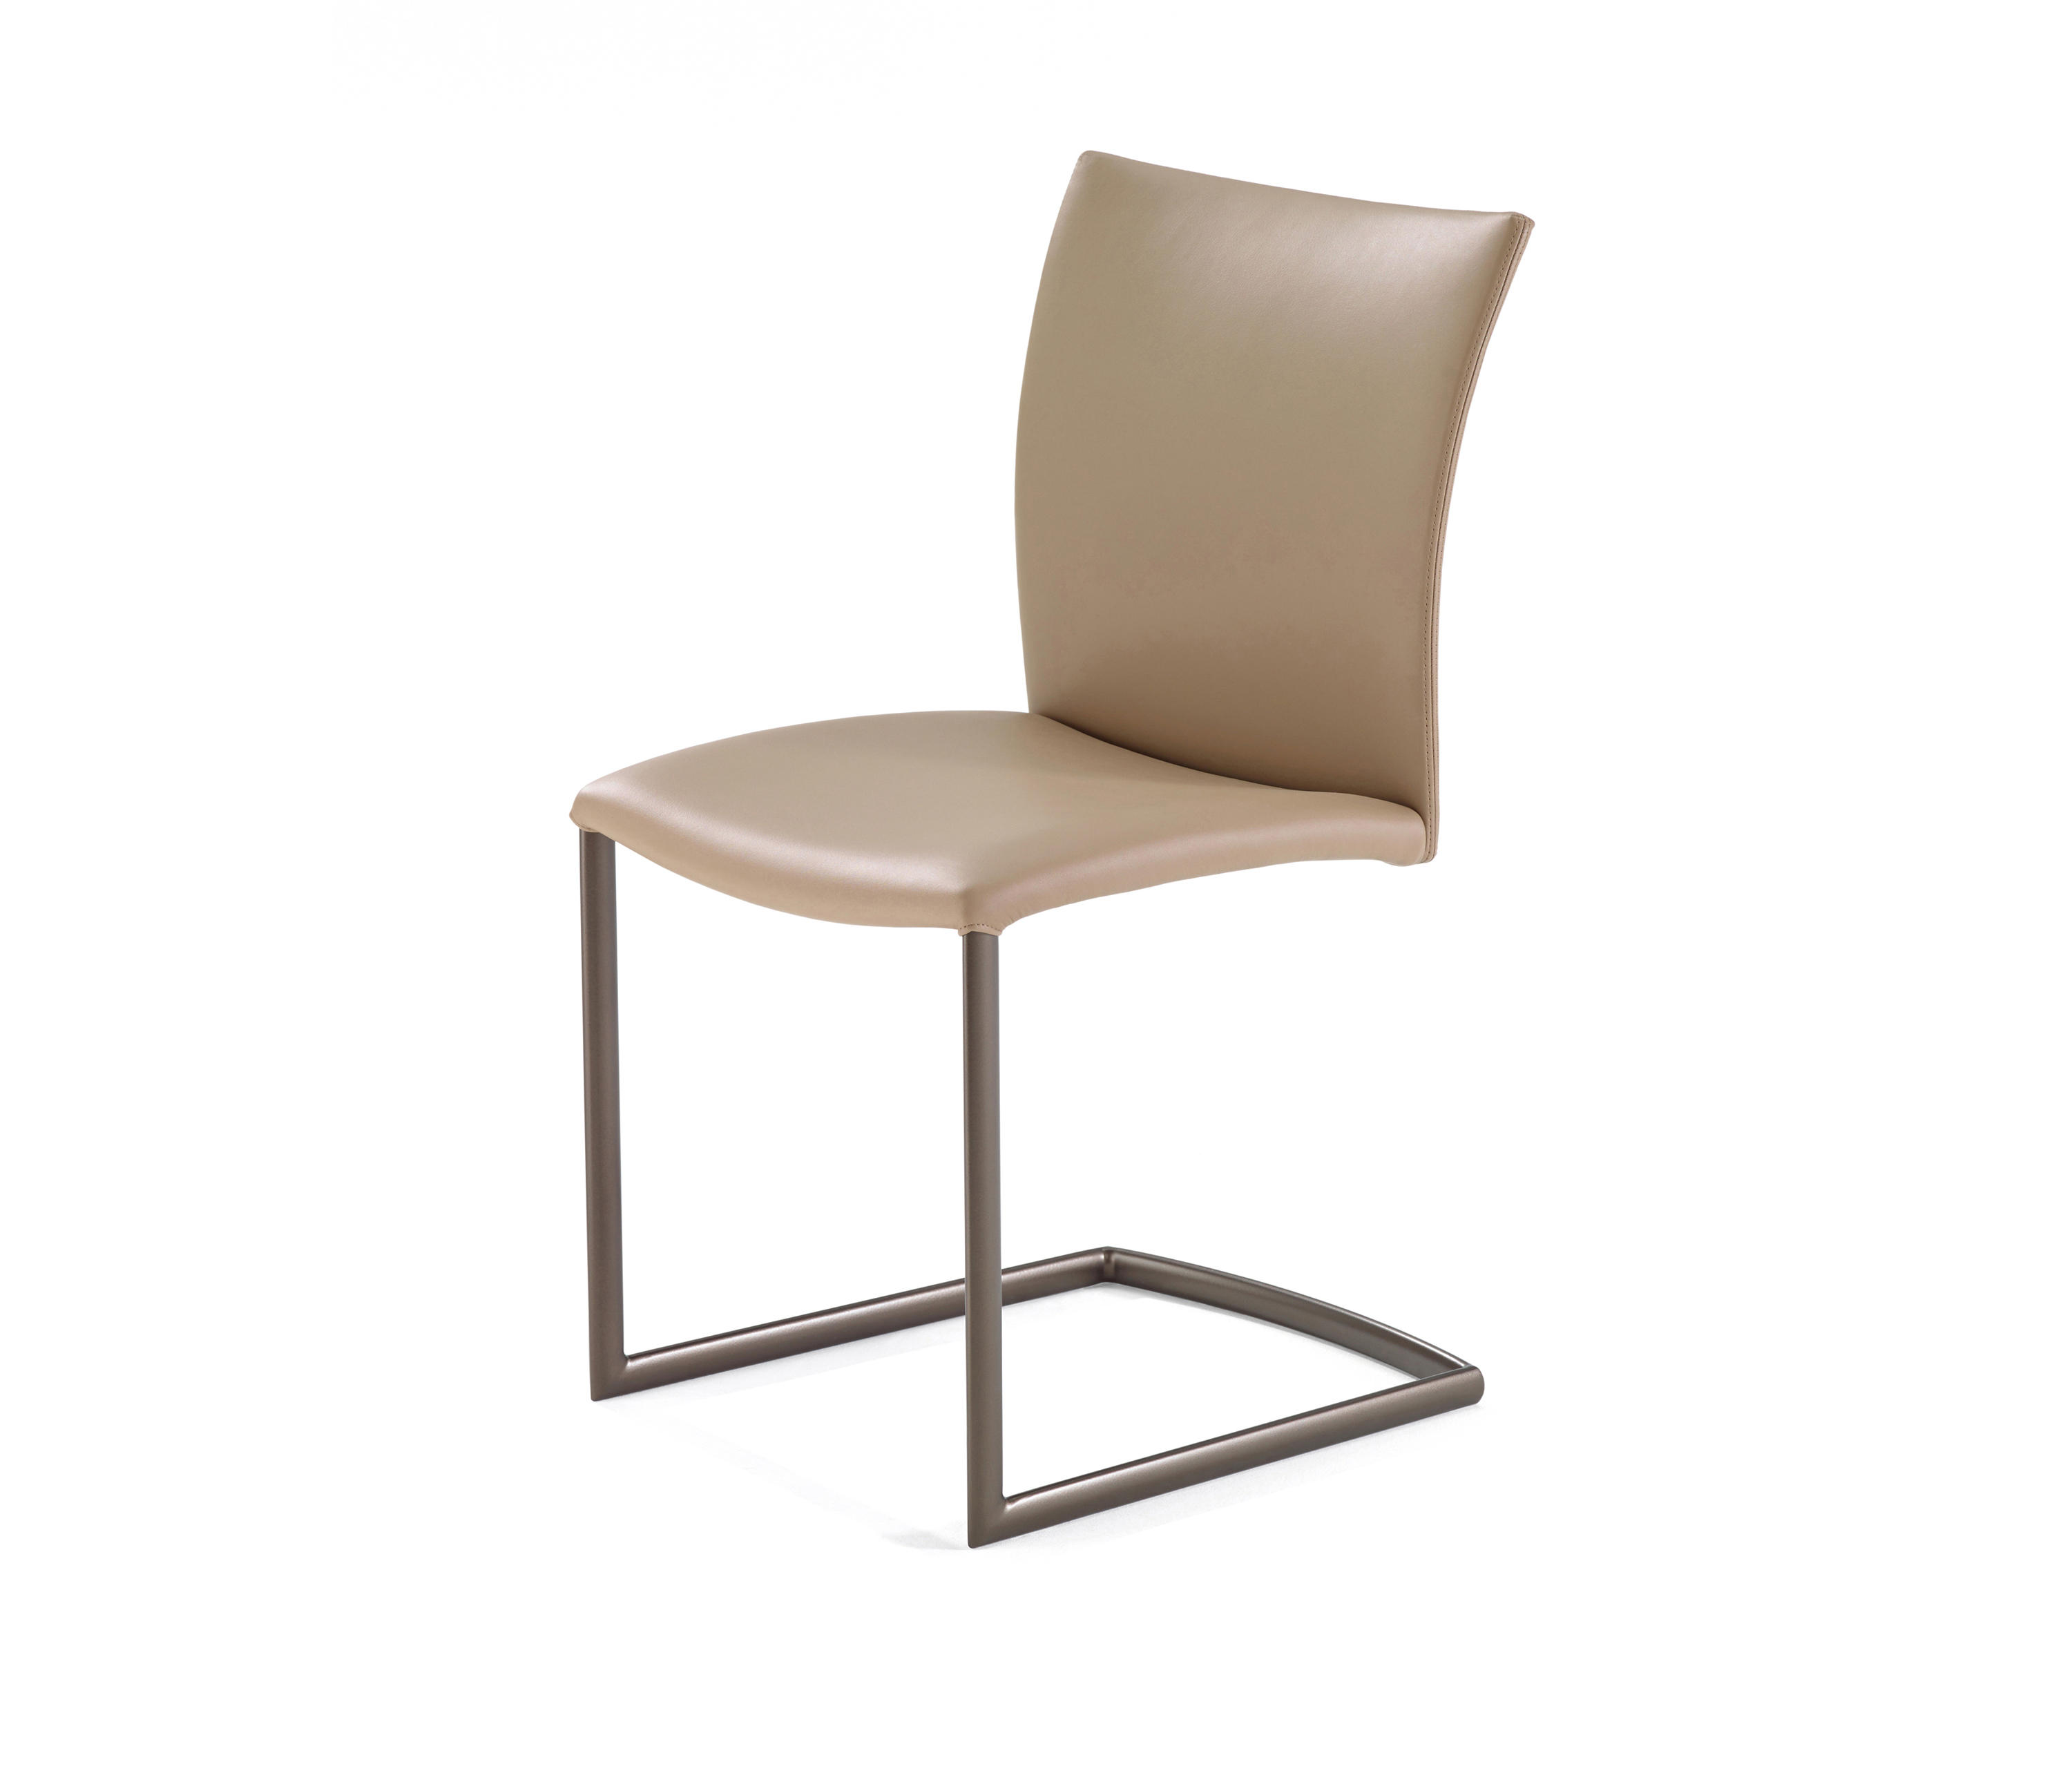 Nobile Swing | 2071 By DRAENERT | Chairs ...